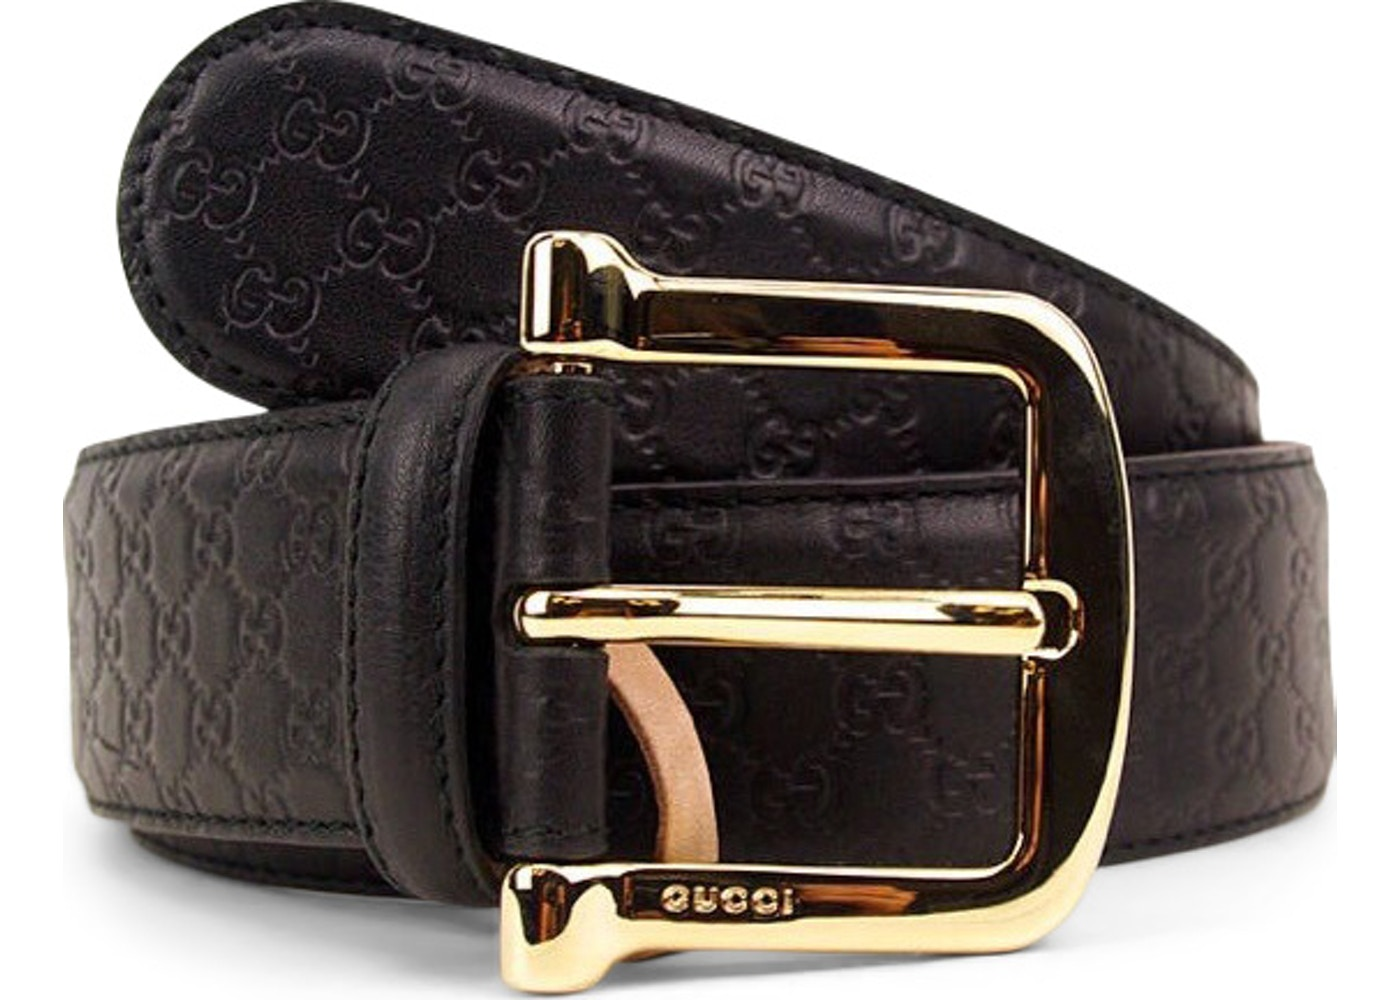 91830ec50473 Gucci Signature Belt Guccissima Embossed Gold Black